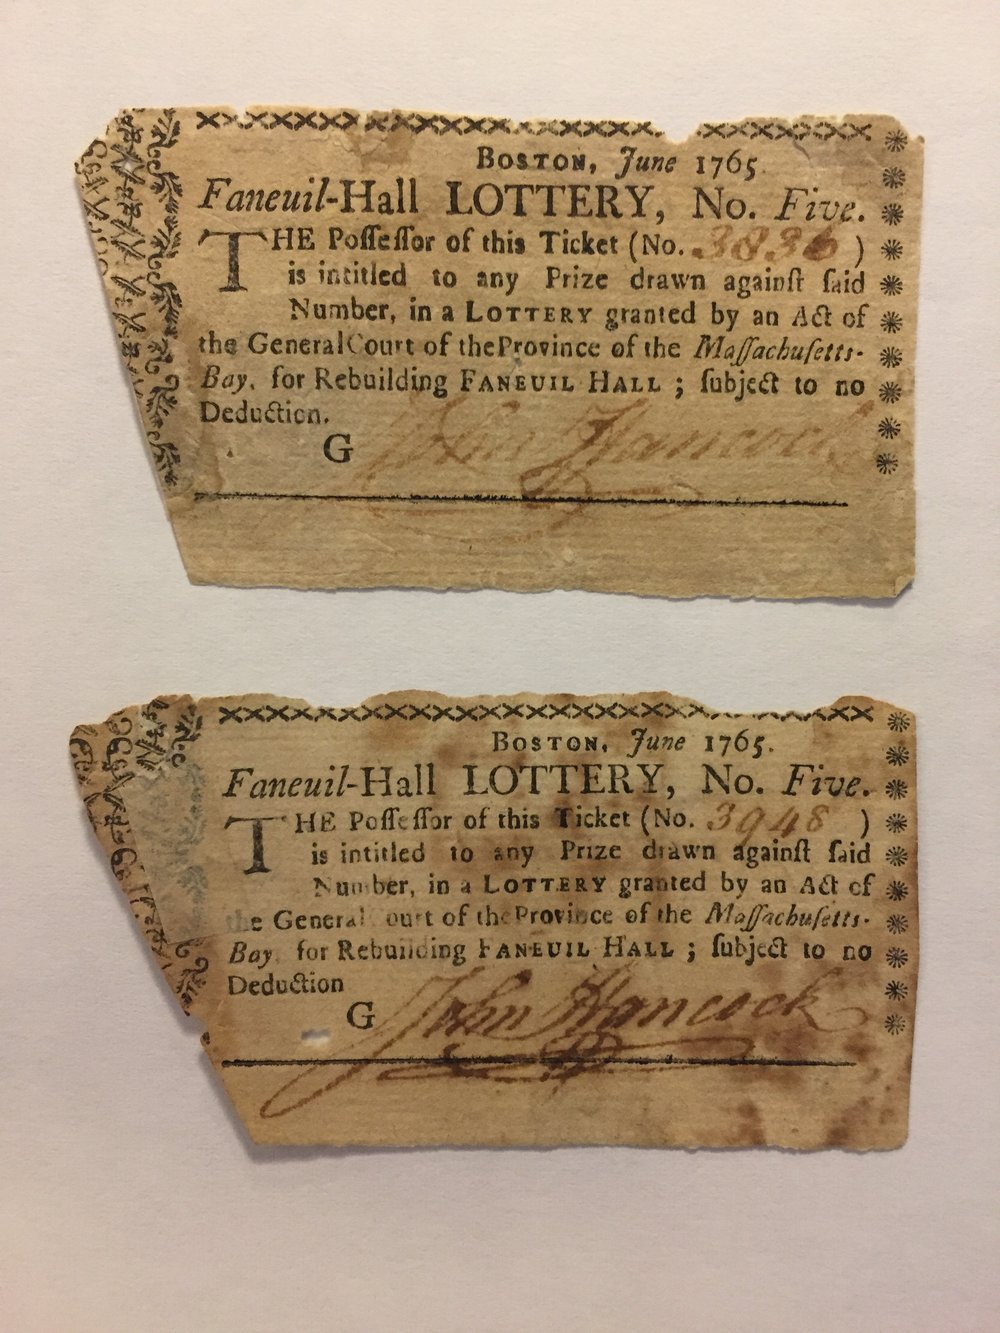 Faneuil Hall Lottery tickets circa June 1765. MS0119/DC1129